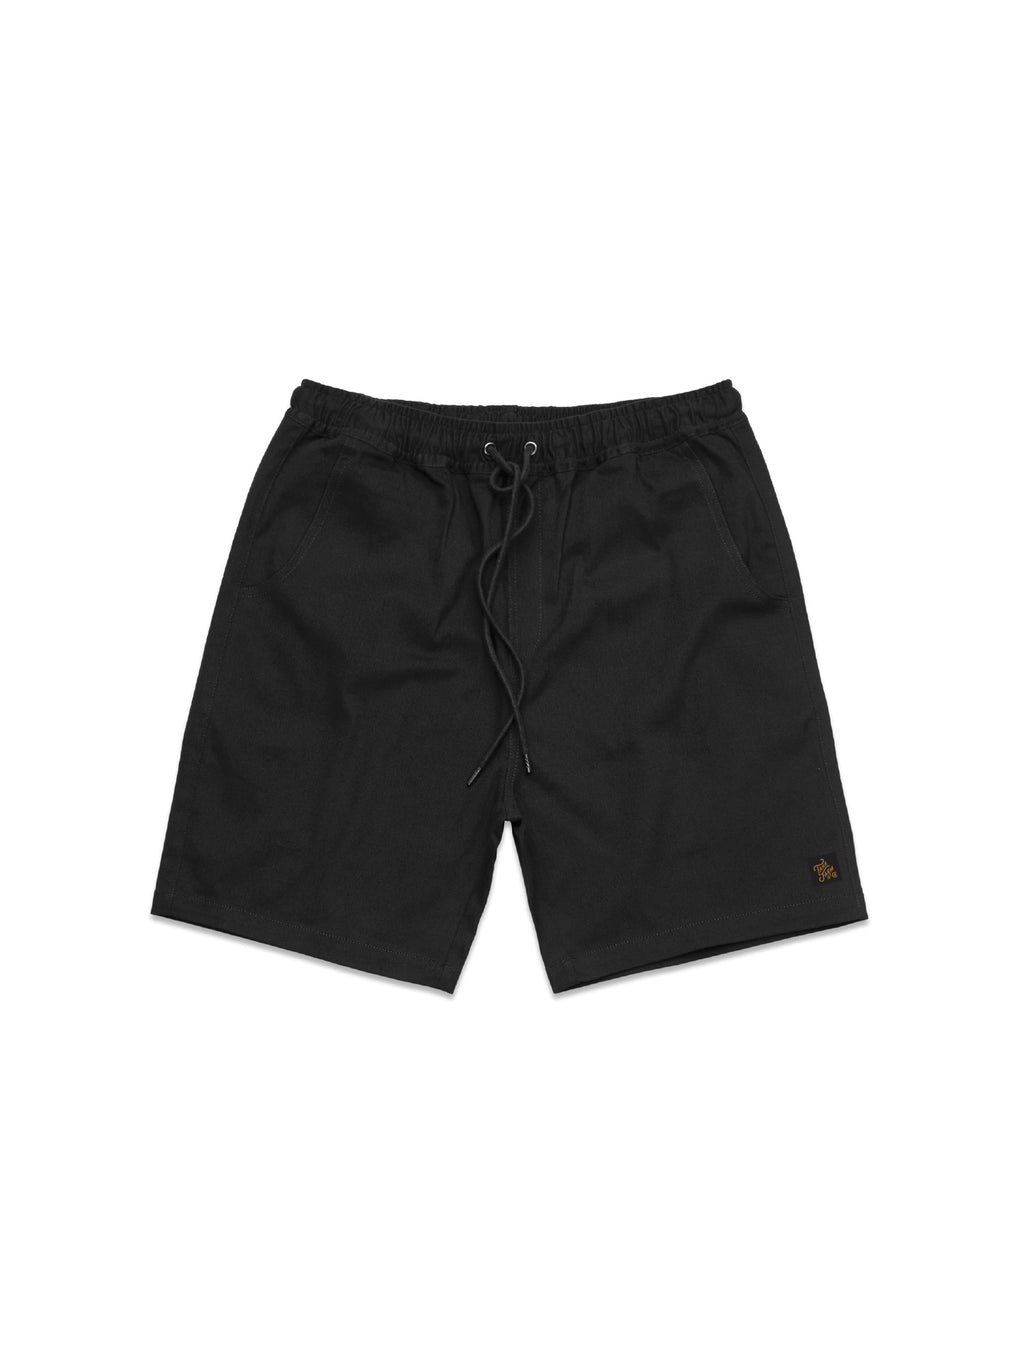 THE WALK SHORTS- BLACK - Tankfarm & Co.